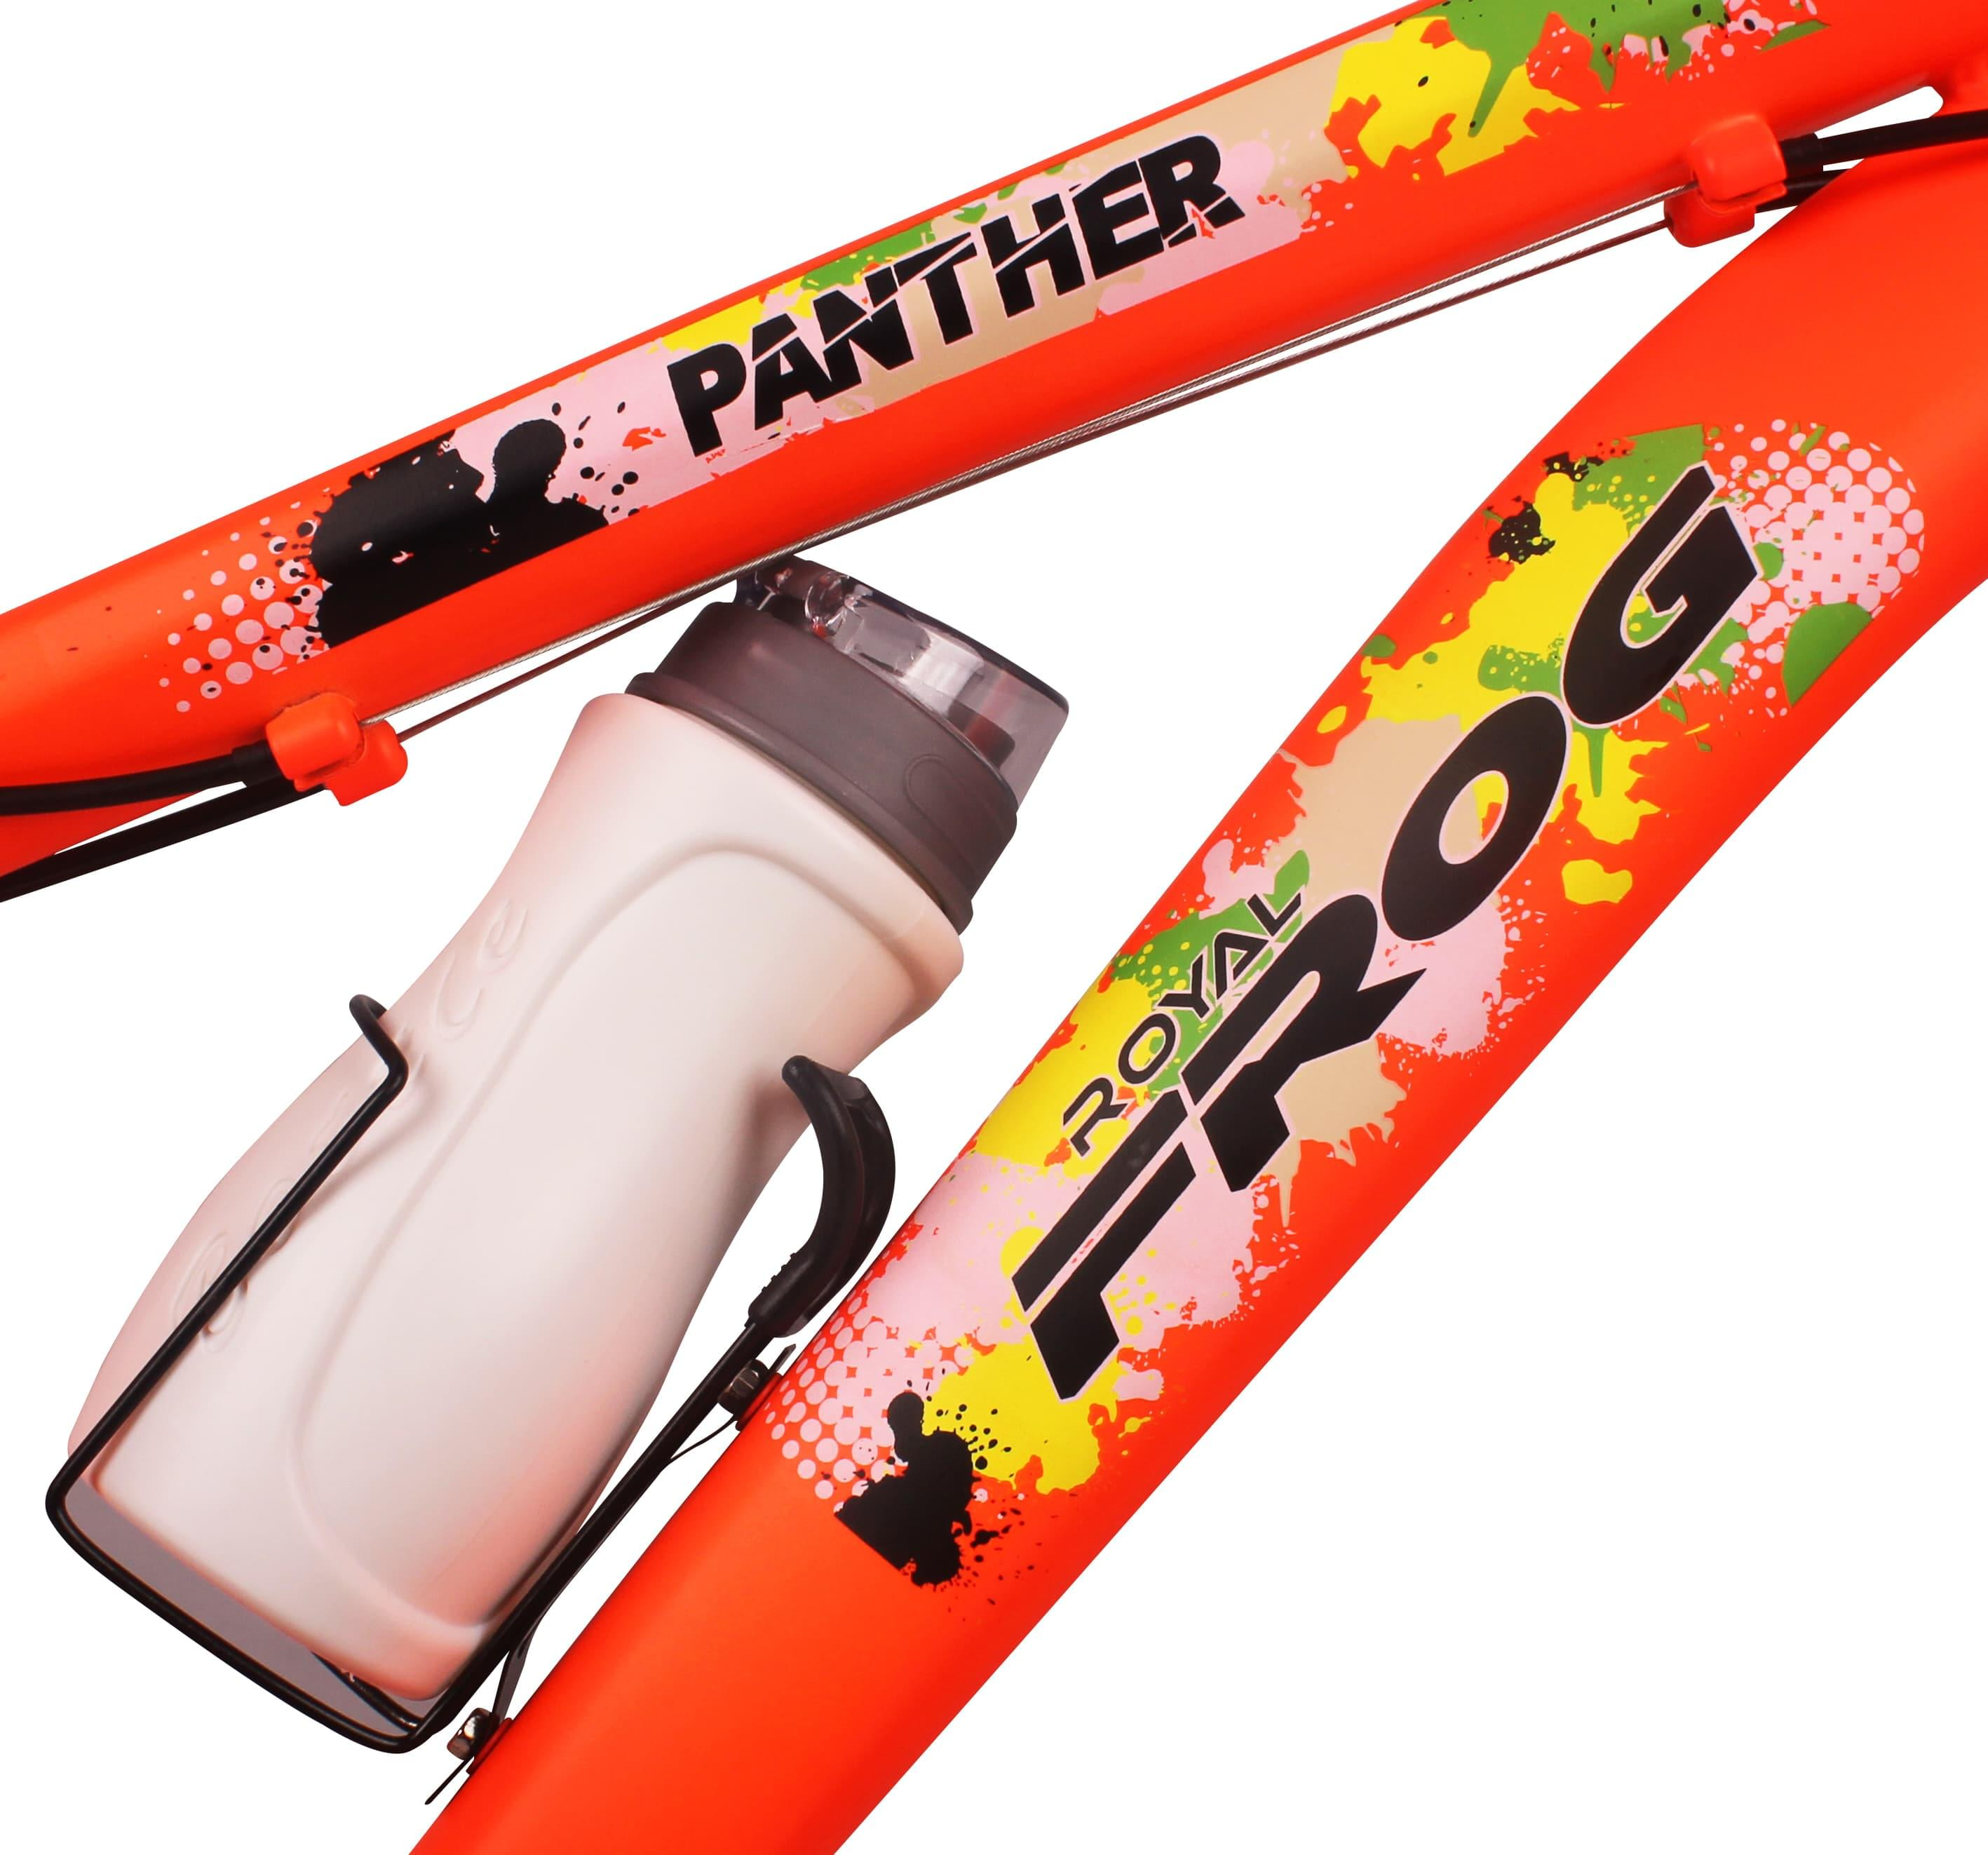 Panther 20 (Orange color) image 11